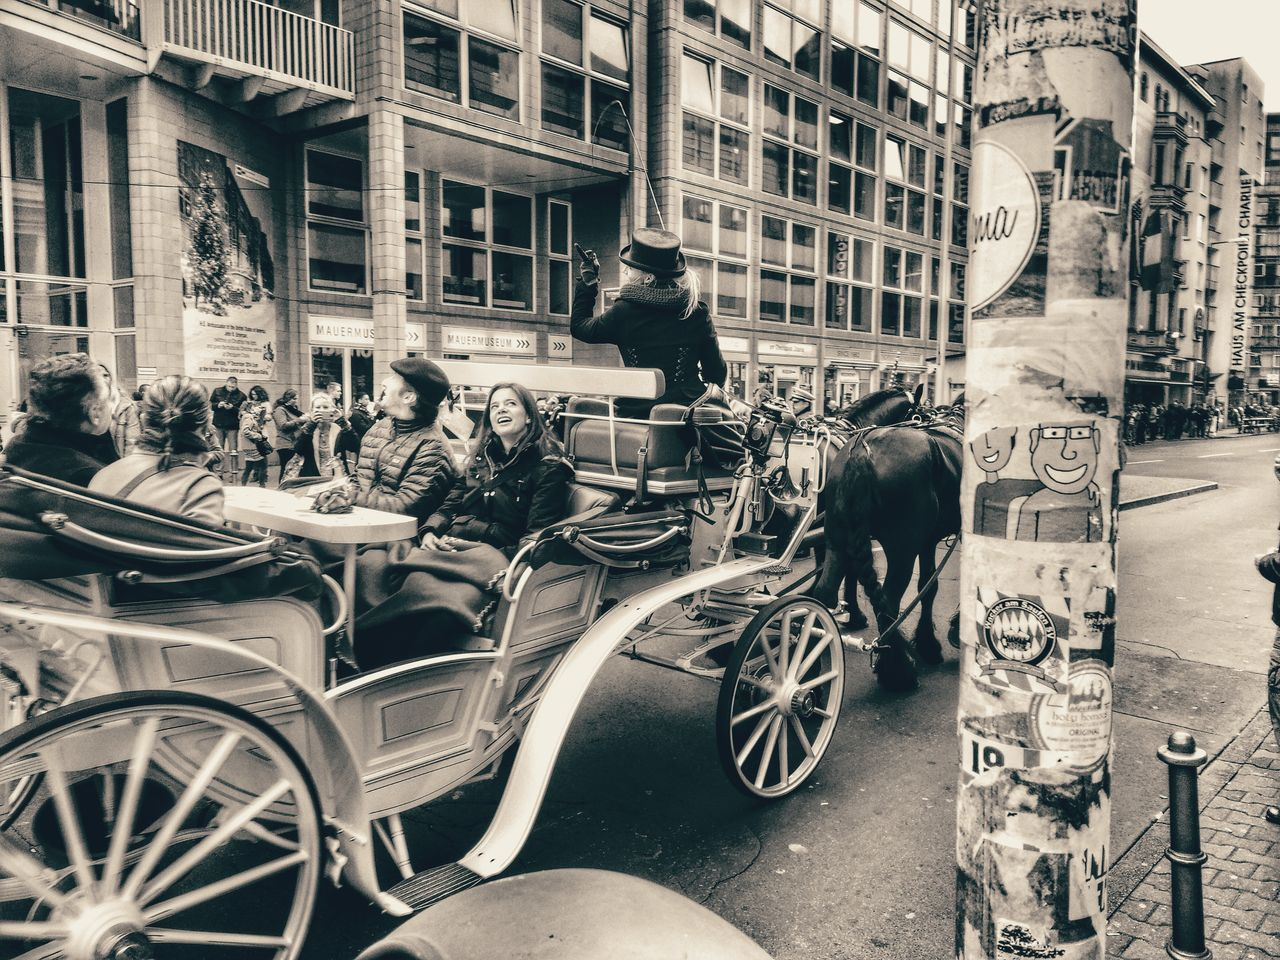 Checkpointcharlie Berlin Blackandwhite Horse-drawn Carriage Germany Street History Look At This Look Up Sightseeing